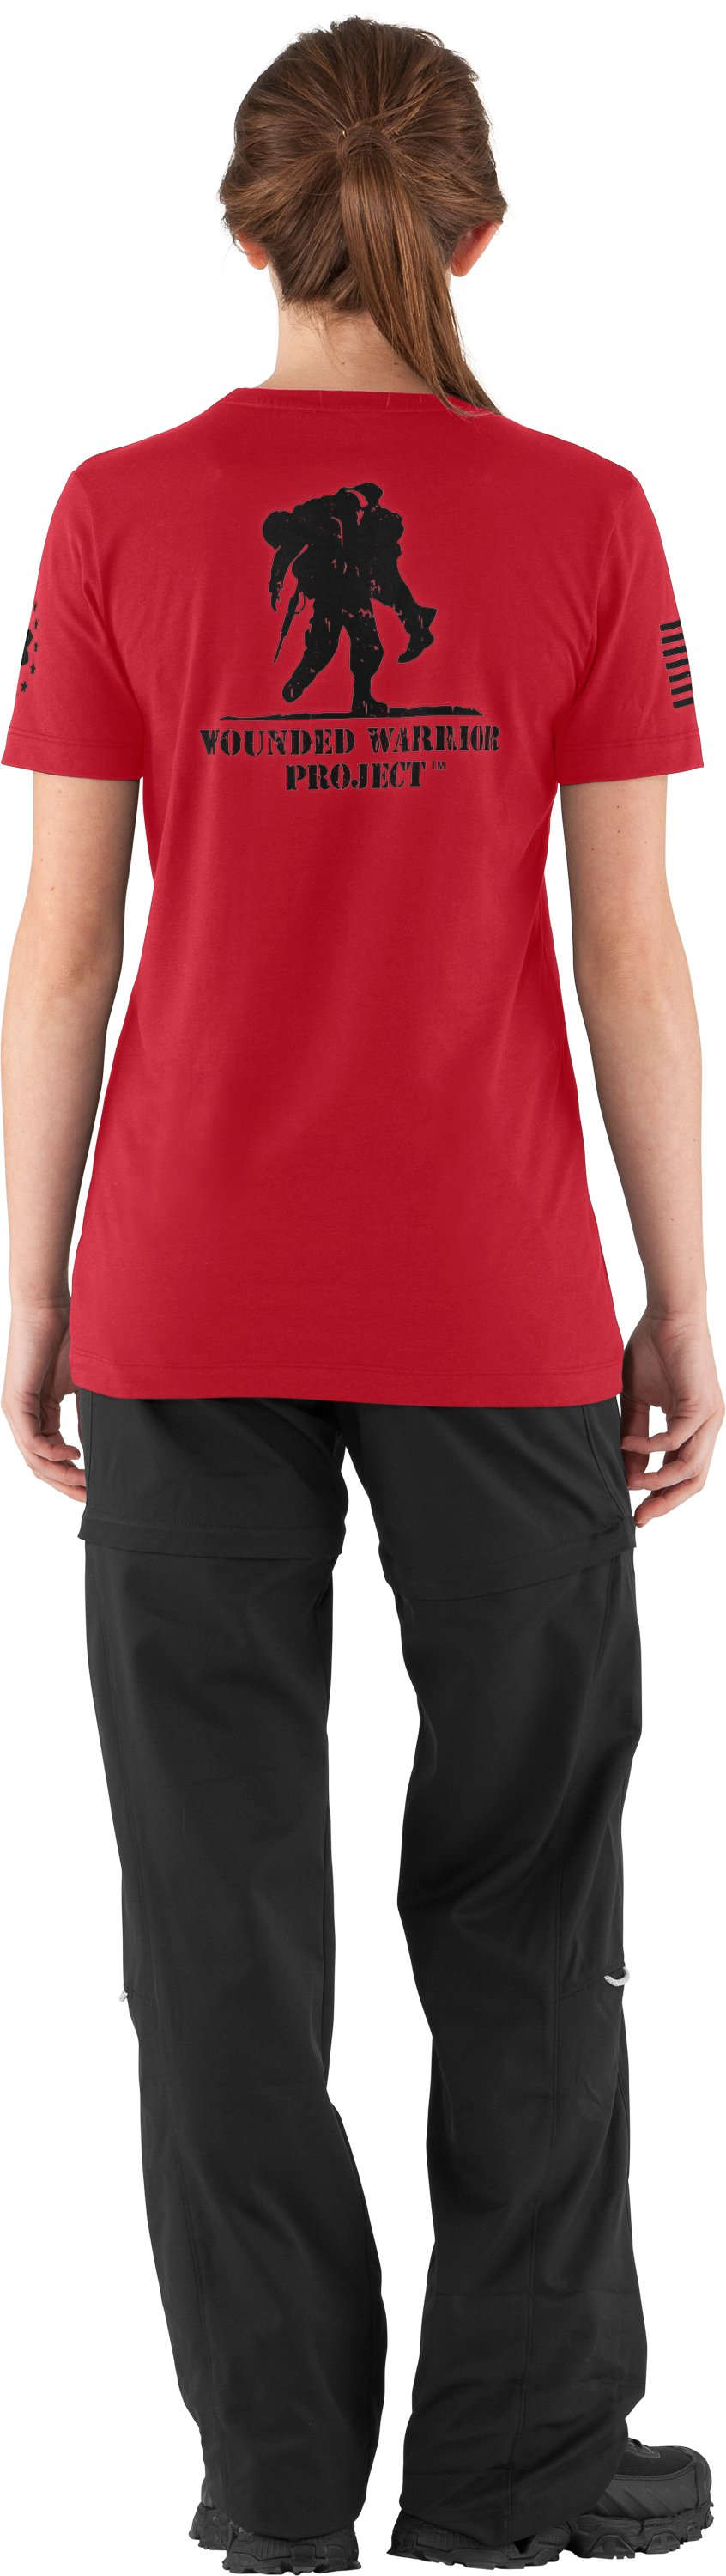 Women's WWP Short Sleeve T-Shirt, Red, Back